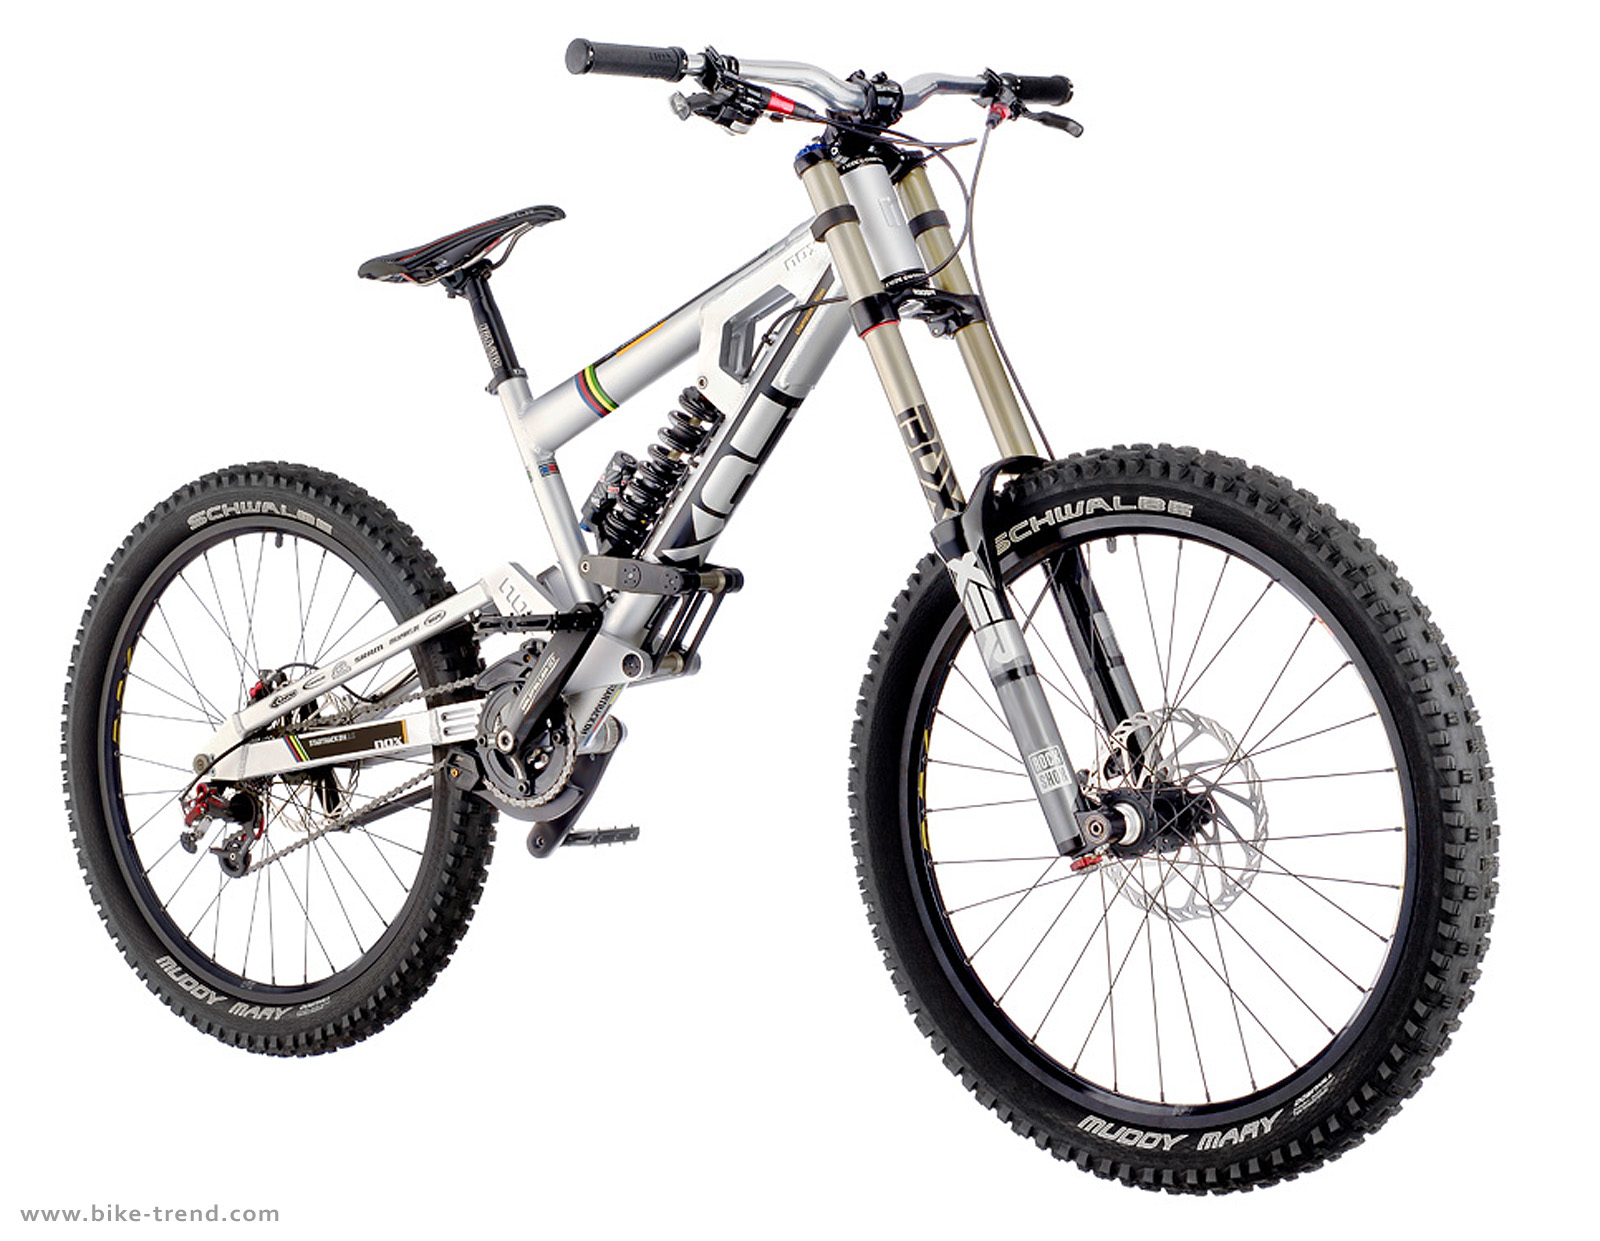 Downhill Mountain Bikes Nox Startrack DH Team